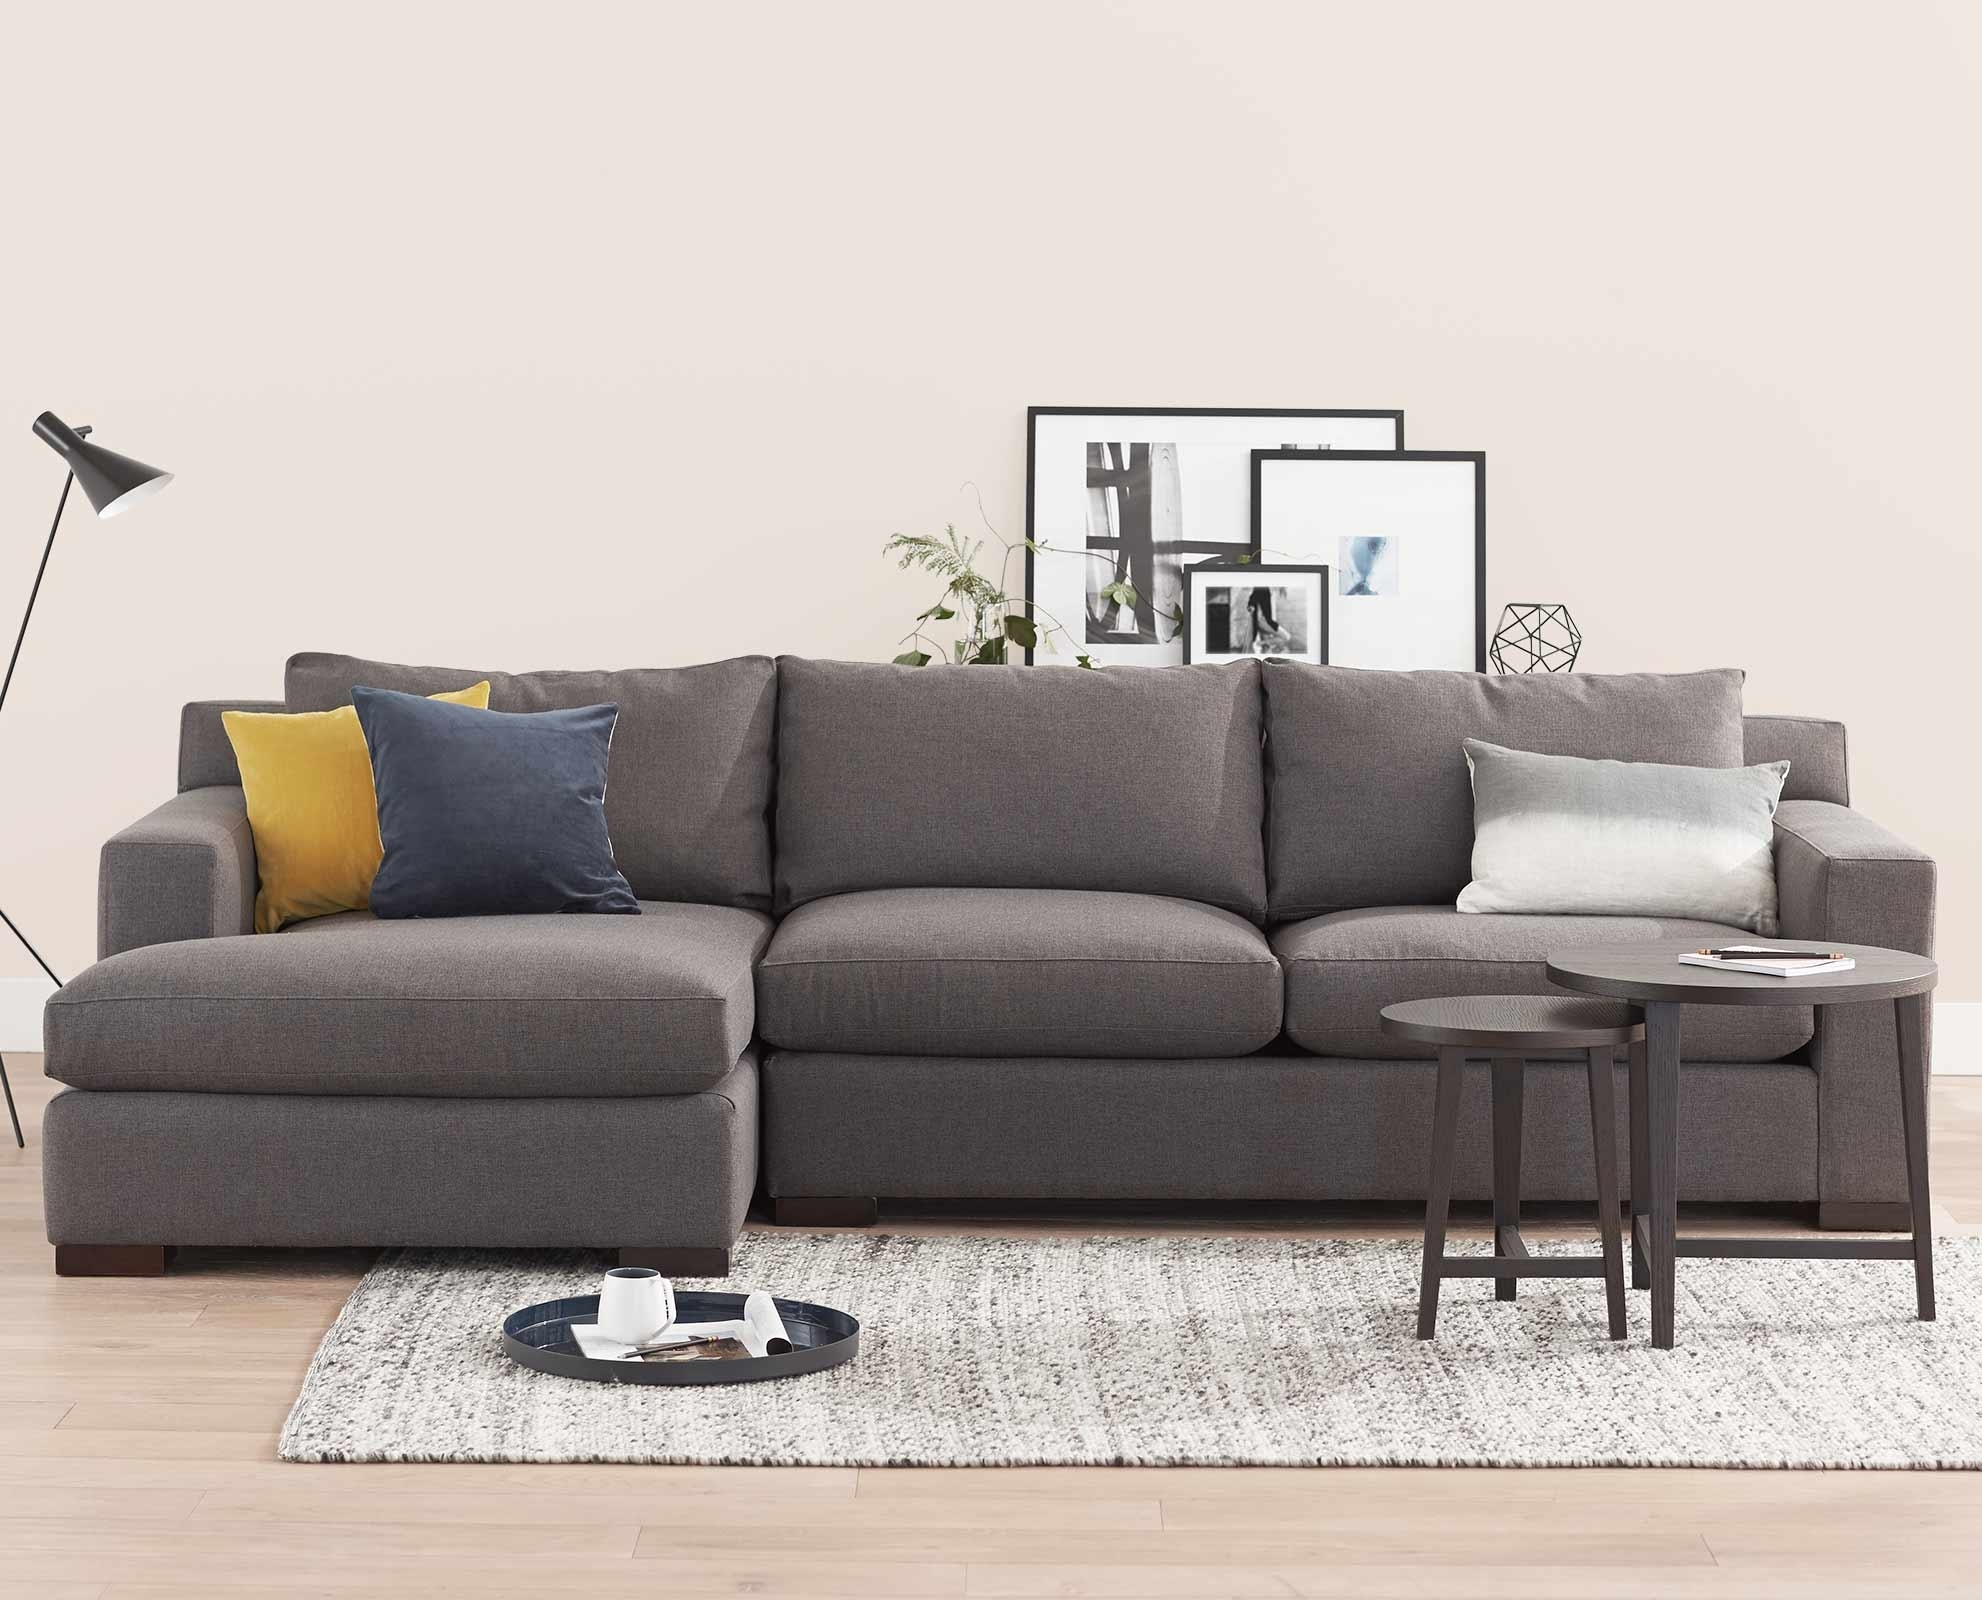 Scandinavian Designs - Always Cozy And Always Classic, The Aida with regard to Dania Sectional Sofas (Image 6 of 10)